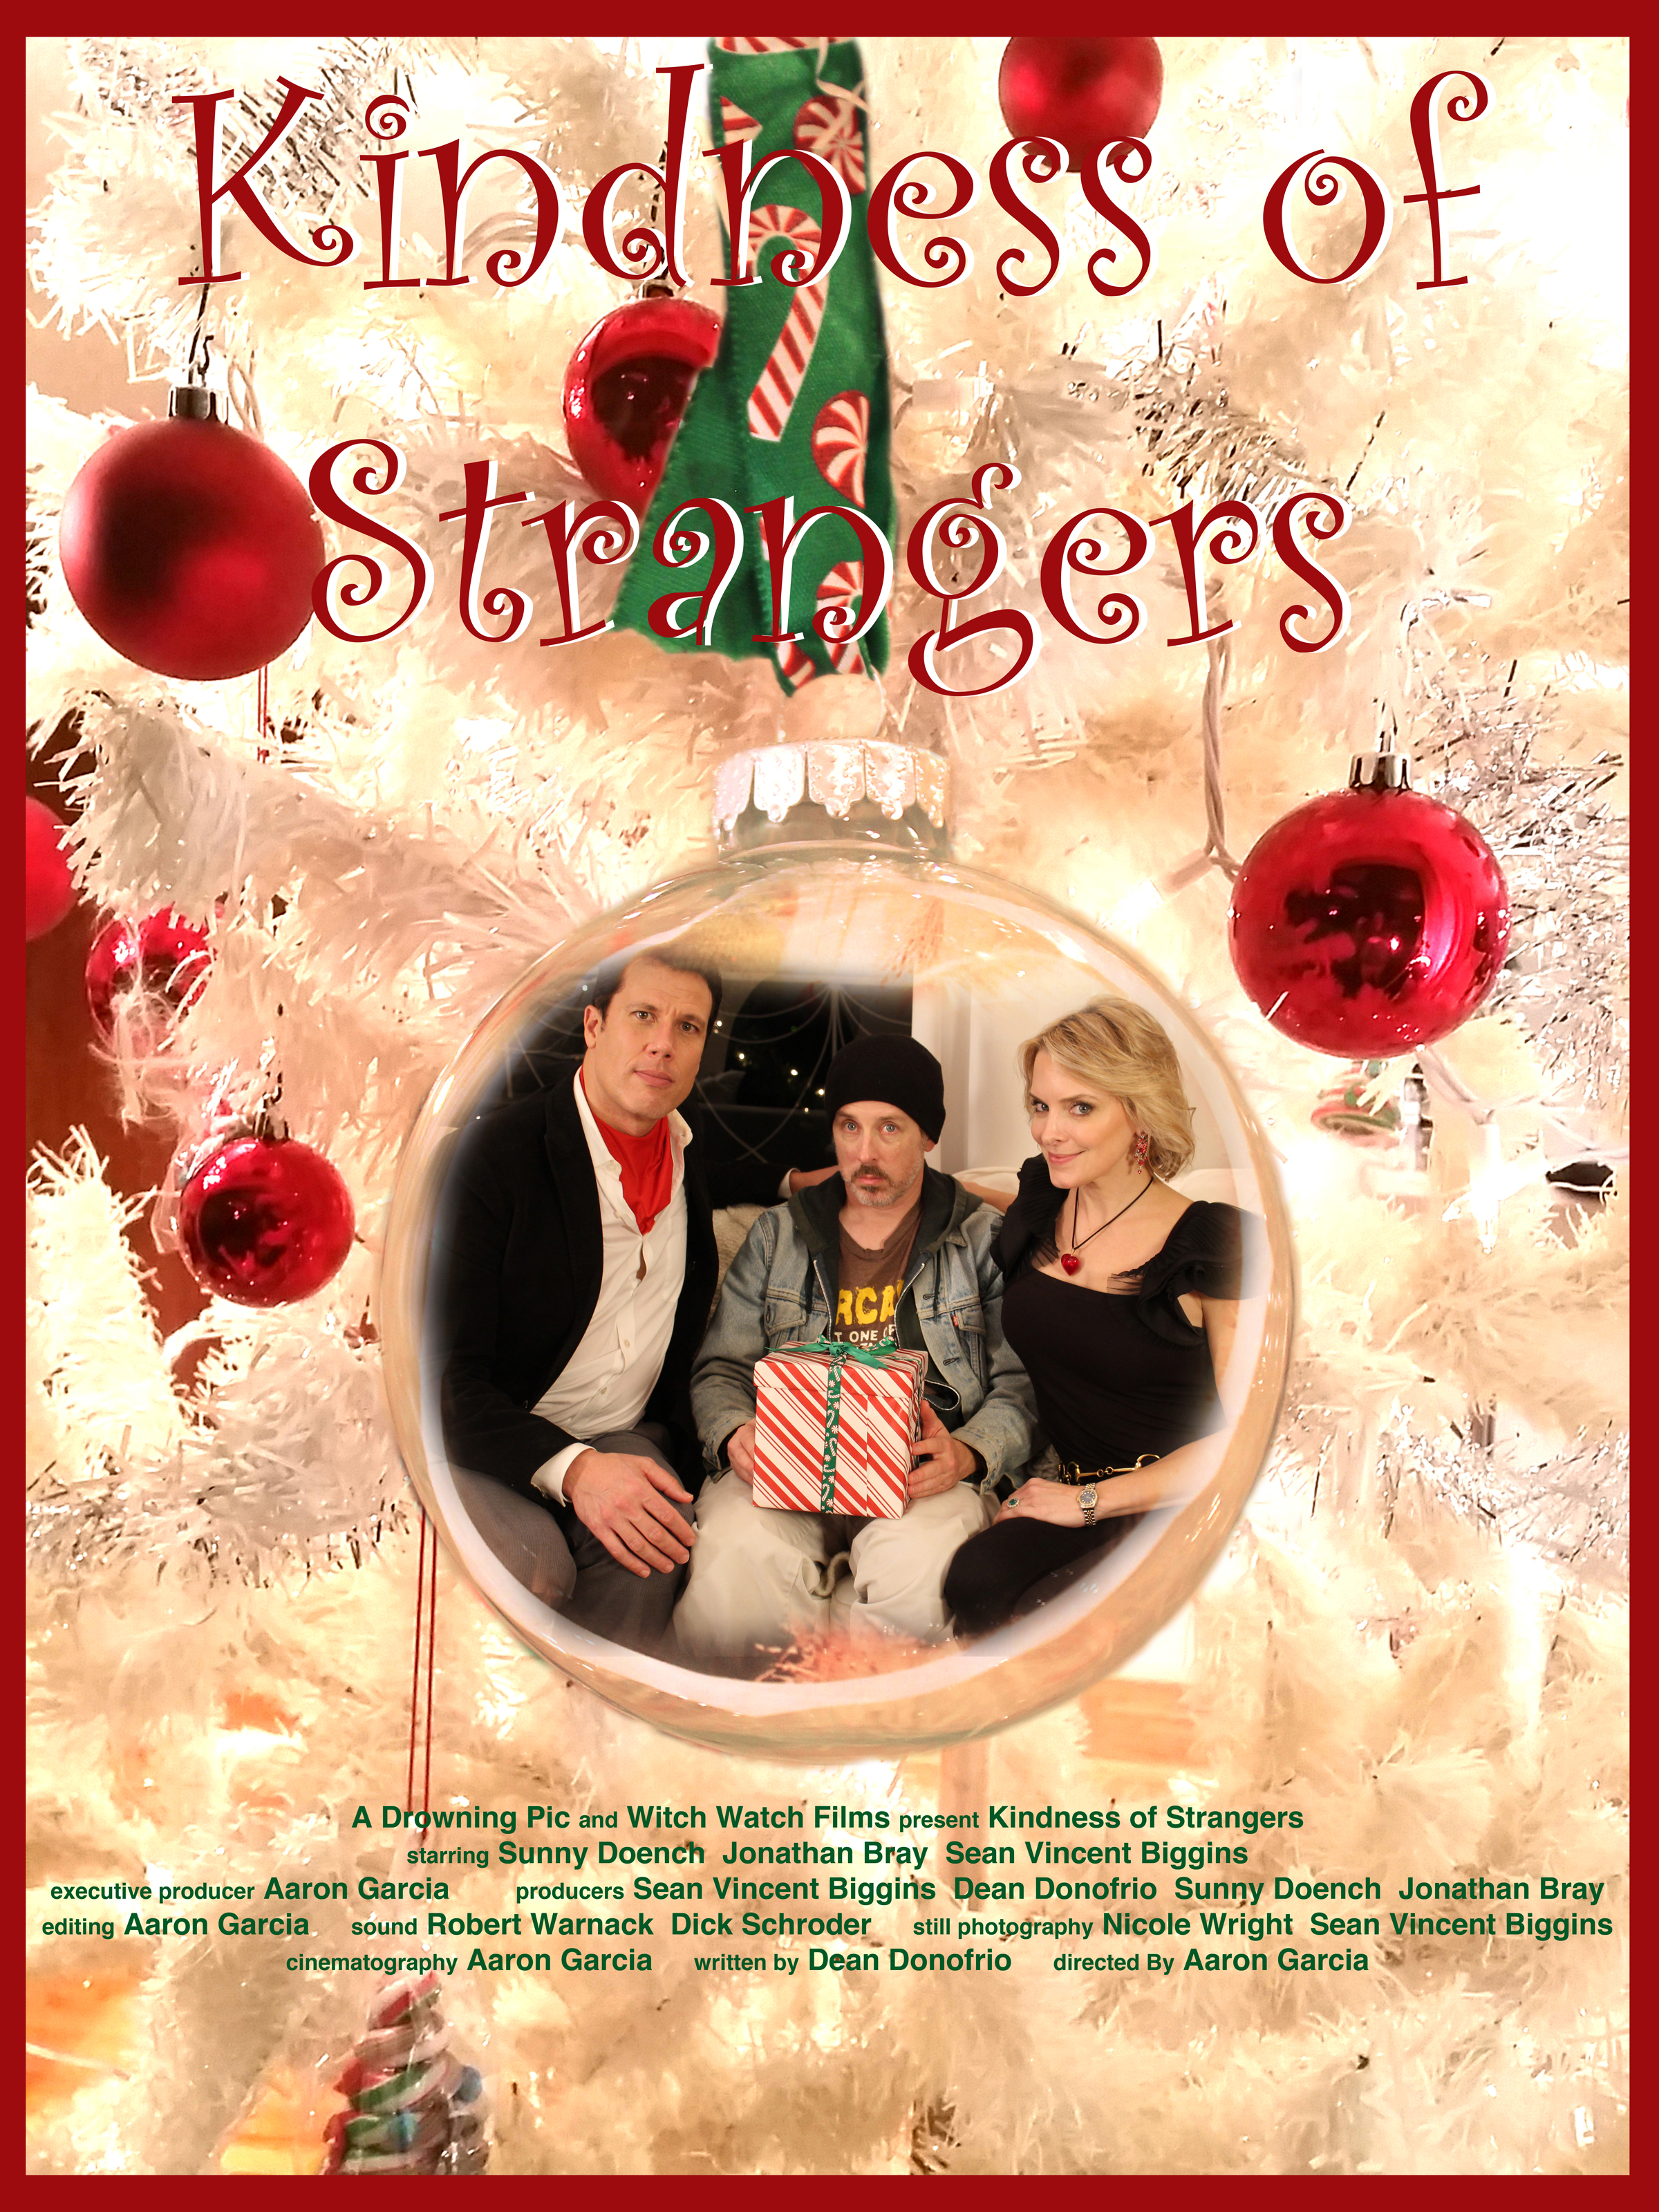 """""""Kindness of Strangers"""" - Our first production was a short film entitled """"Kindness of Strangers"""" and was based on a one-act play by Los Angeles-based writer Dean Donofrio.The film starred myself, Jonathan Bray and Sunny Doench.The film was directed by Aaron Garcia.I was one of the co-producers and I designed the poster shown here."""